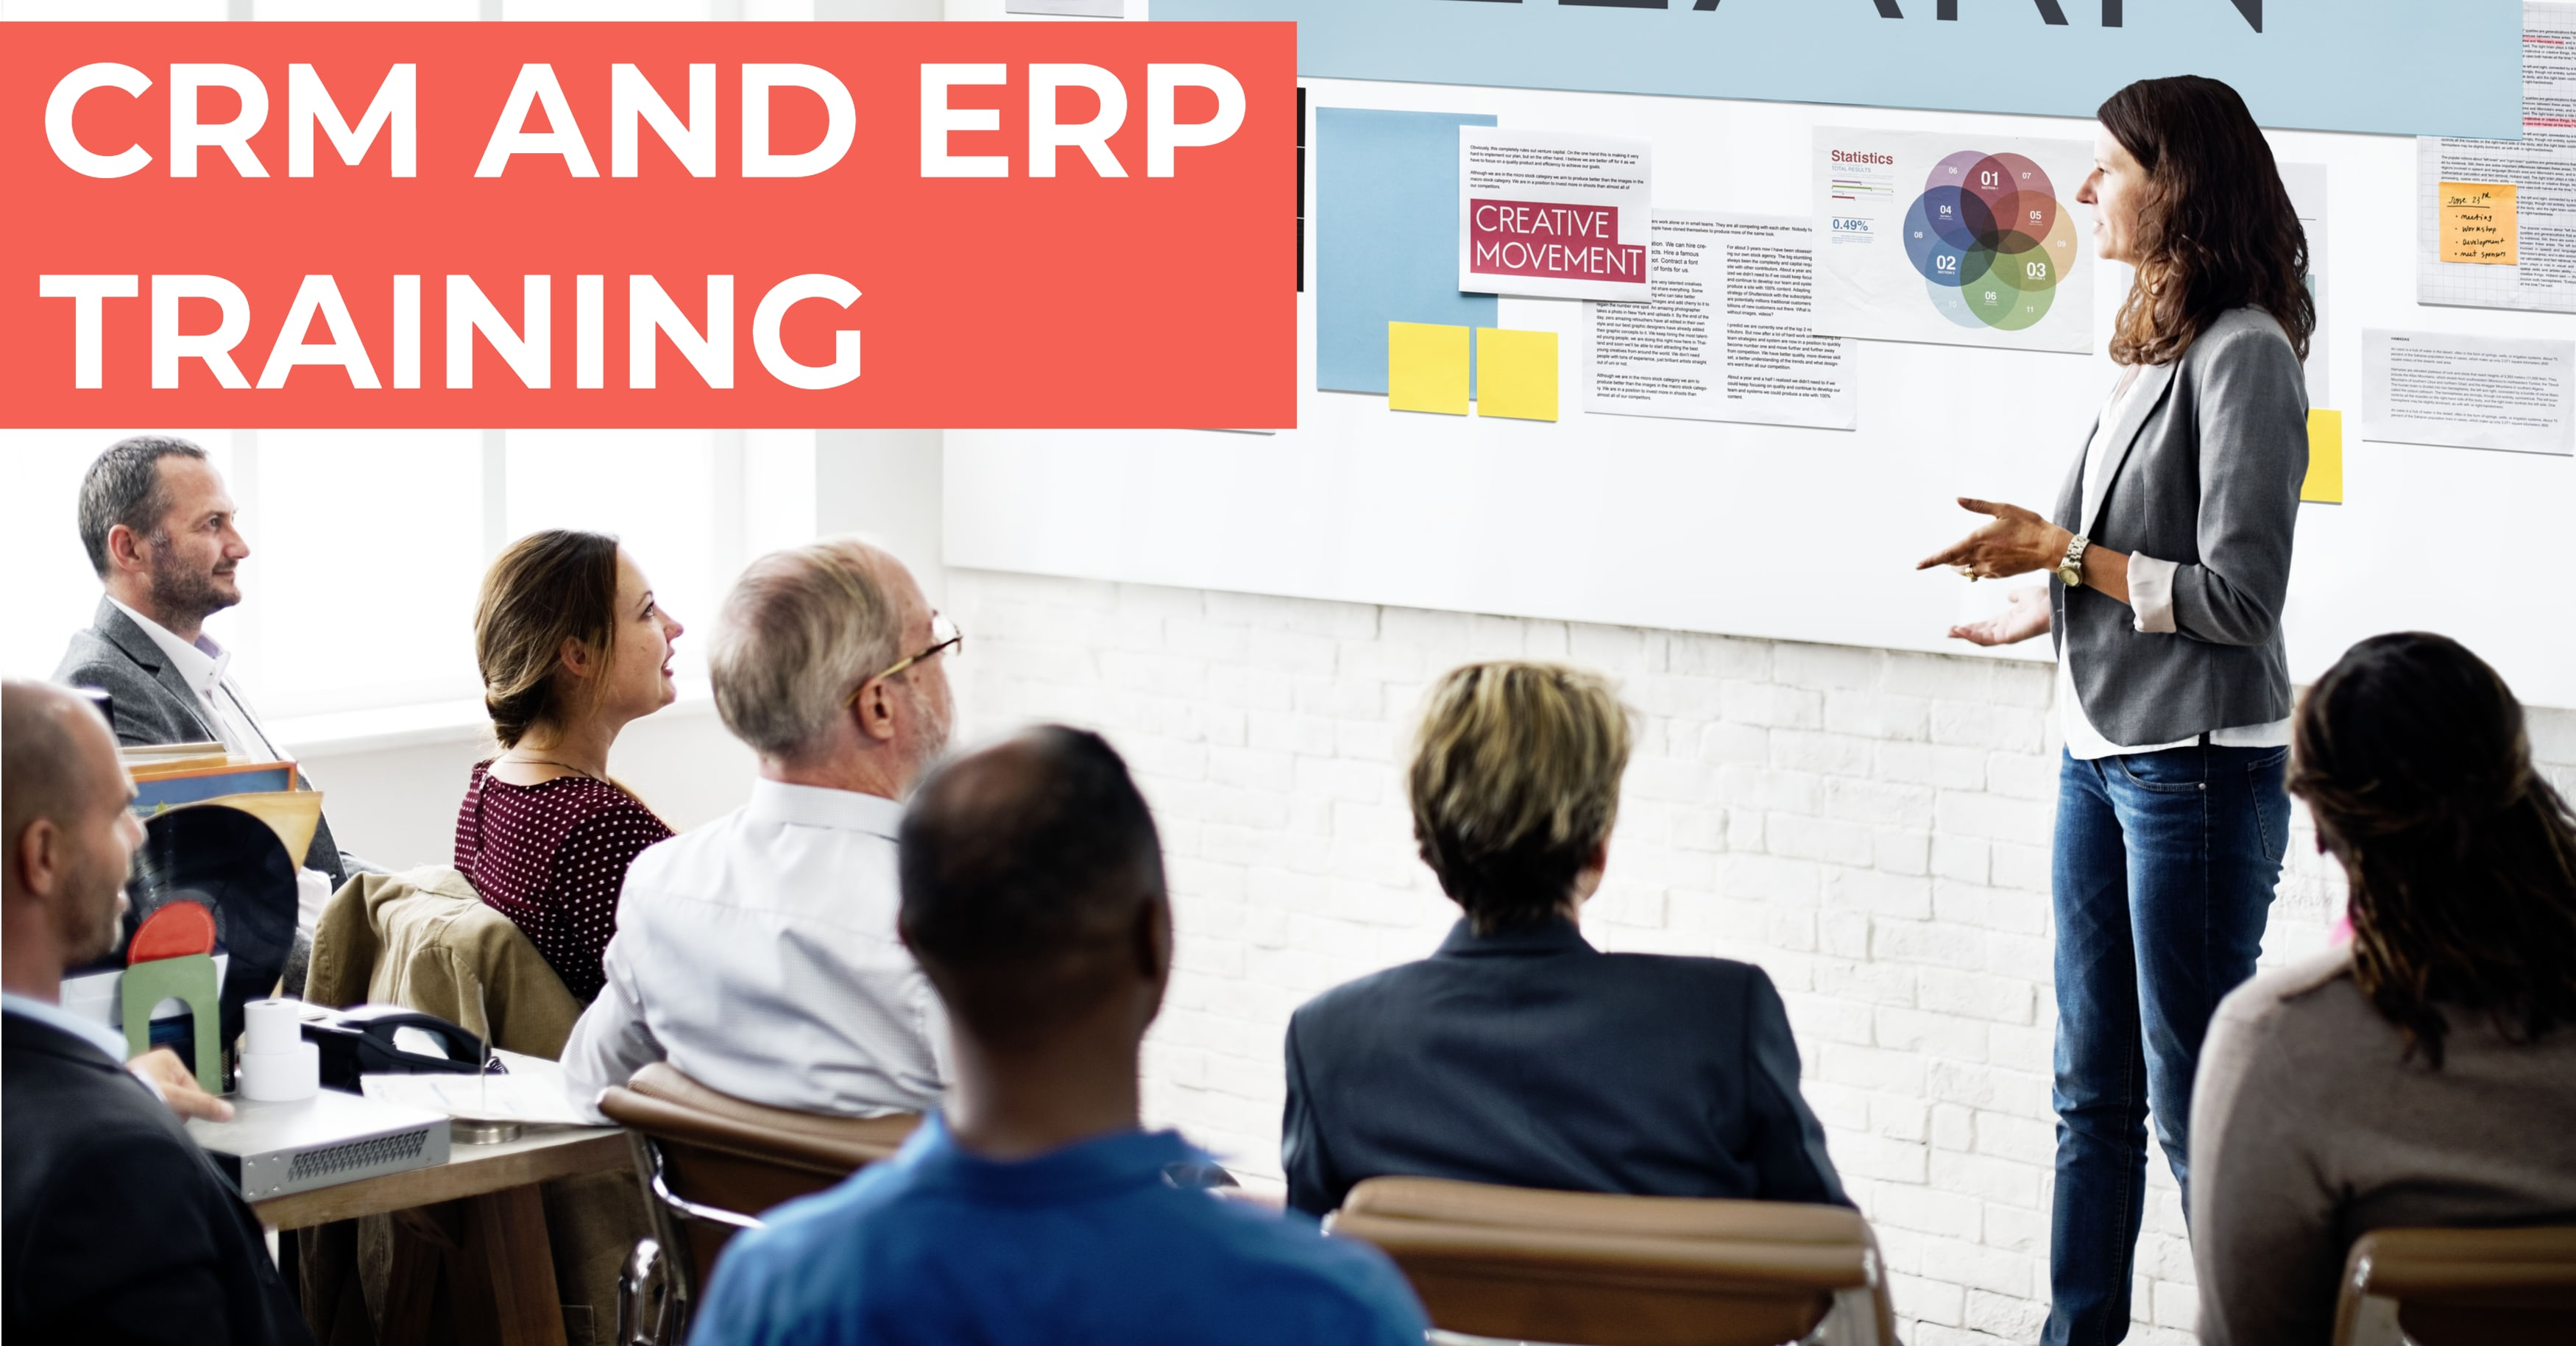 CRM and ERP Training: Key to Software Success